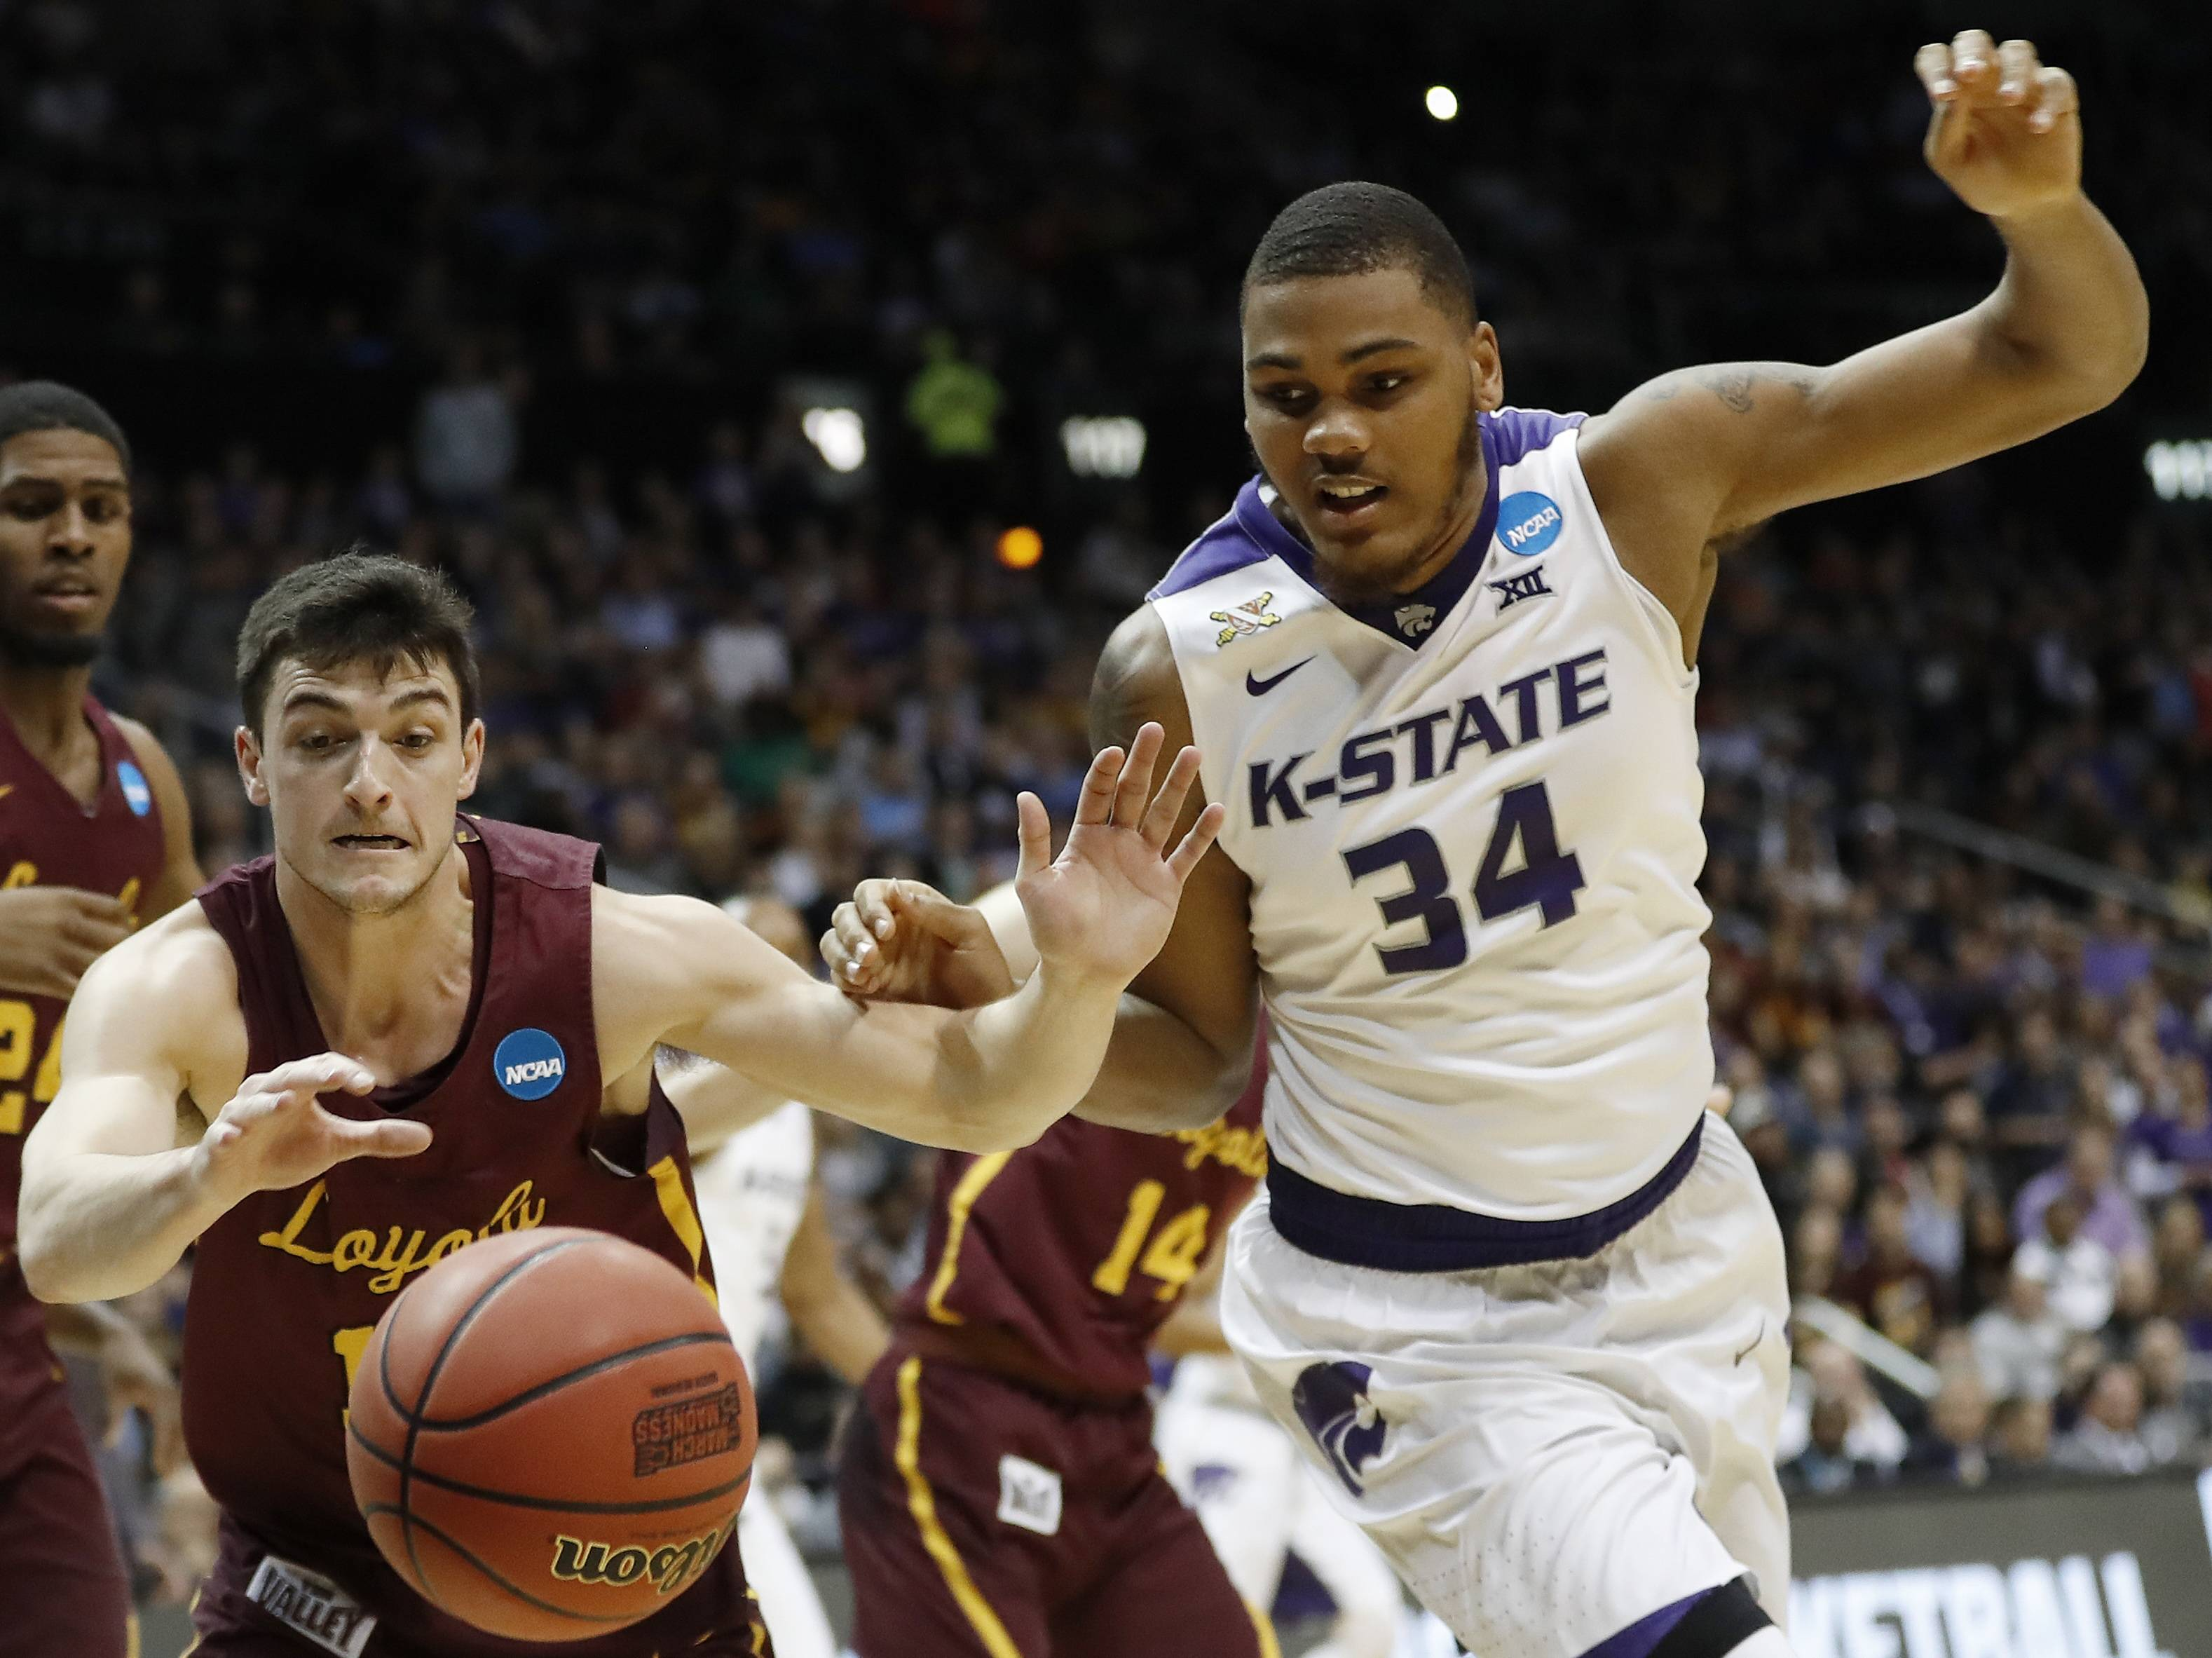 Loyola guard Custer appreciated his one-year detour with Hoiberg at Iowa State